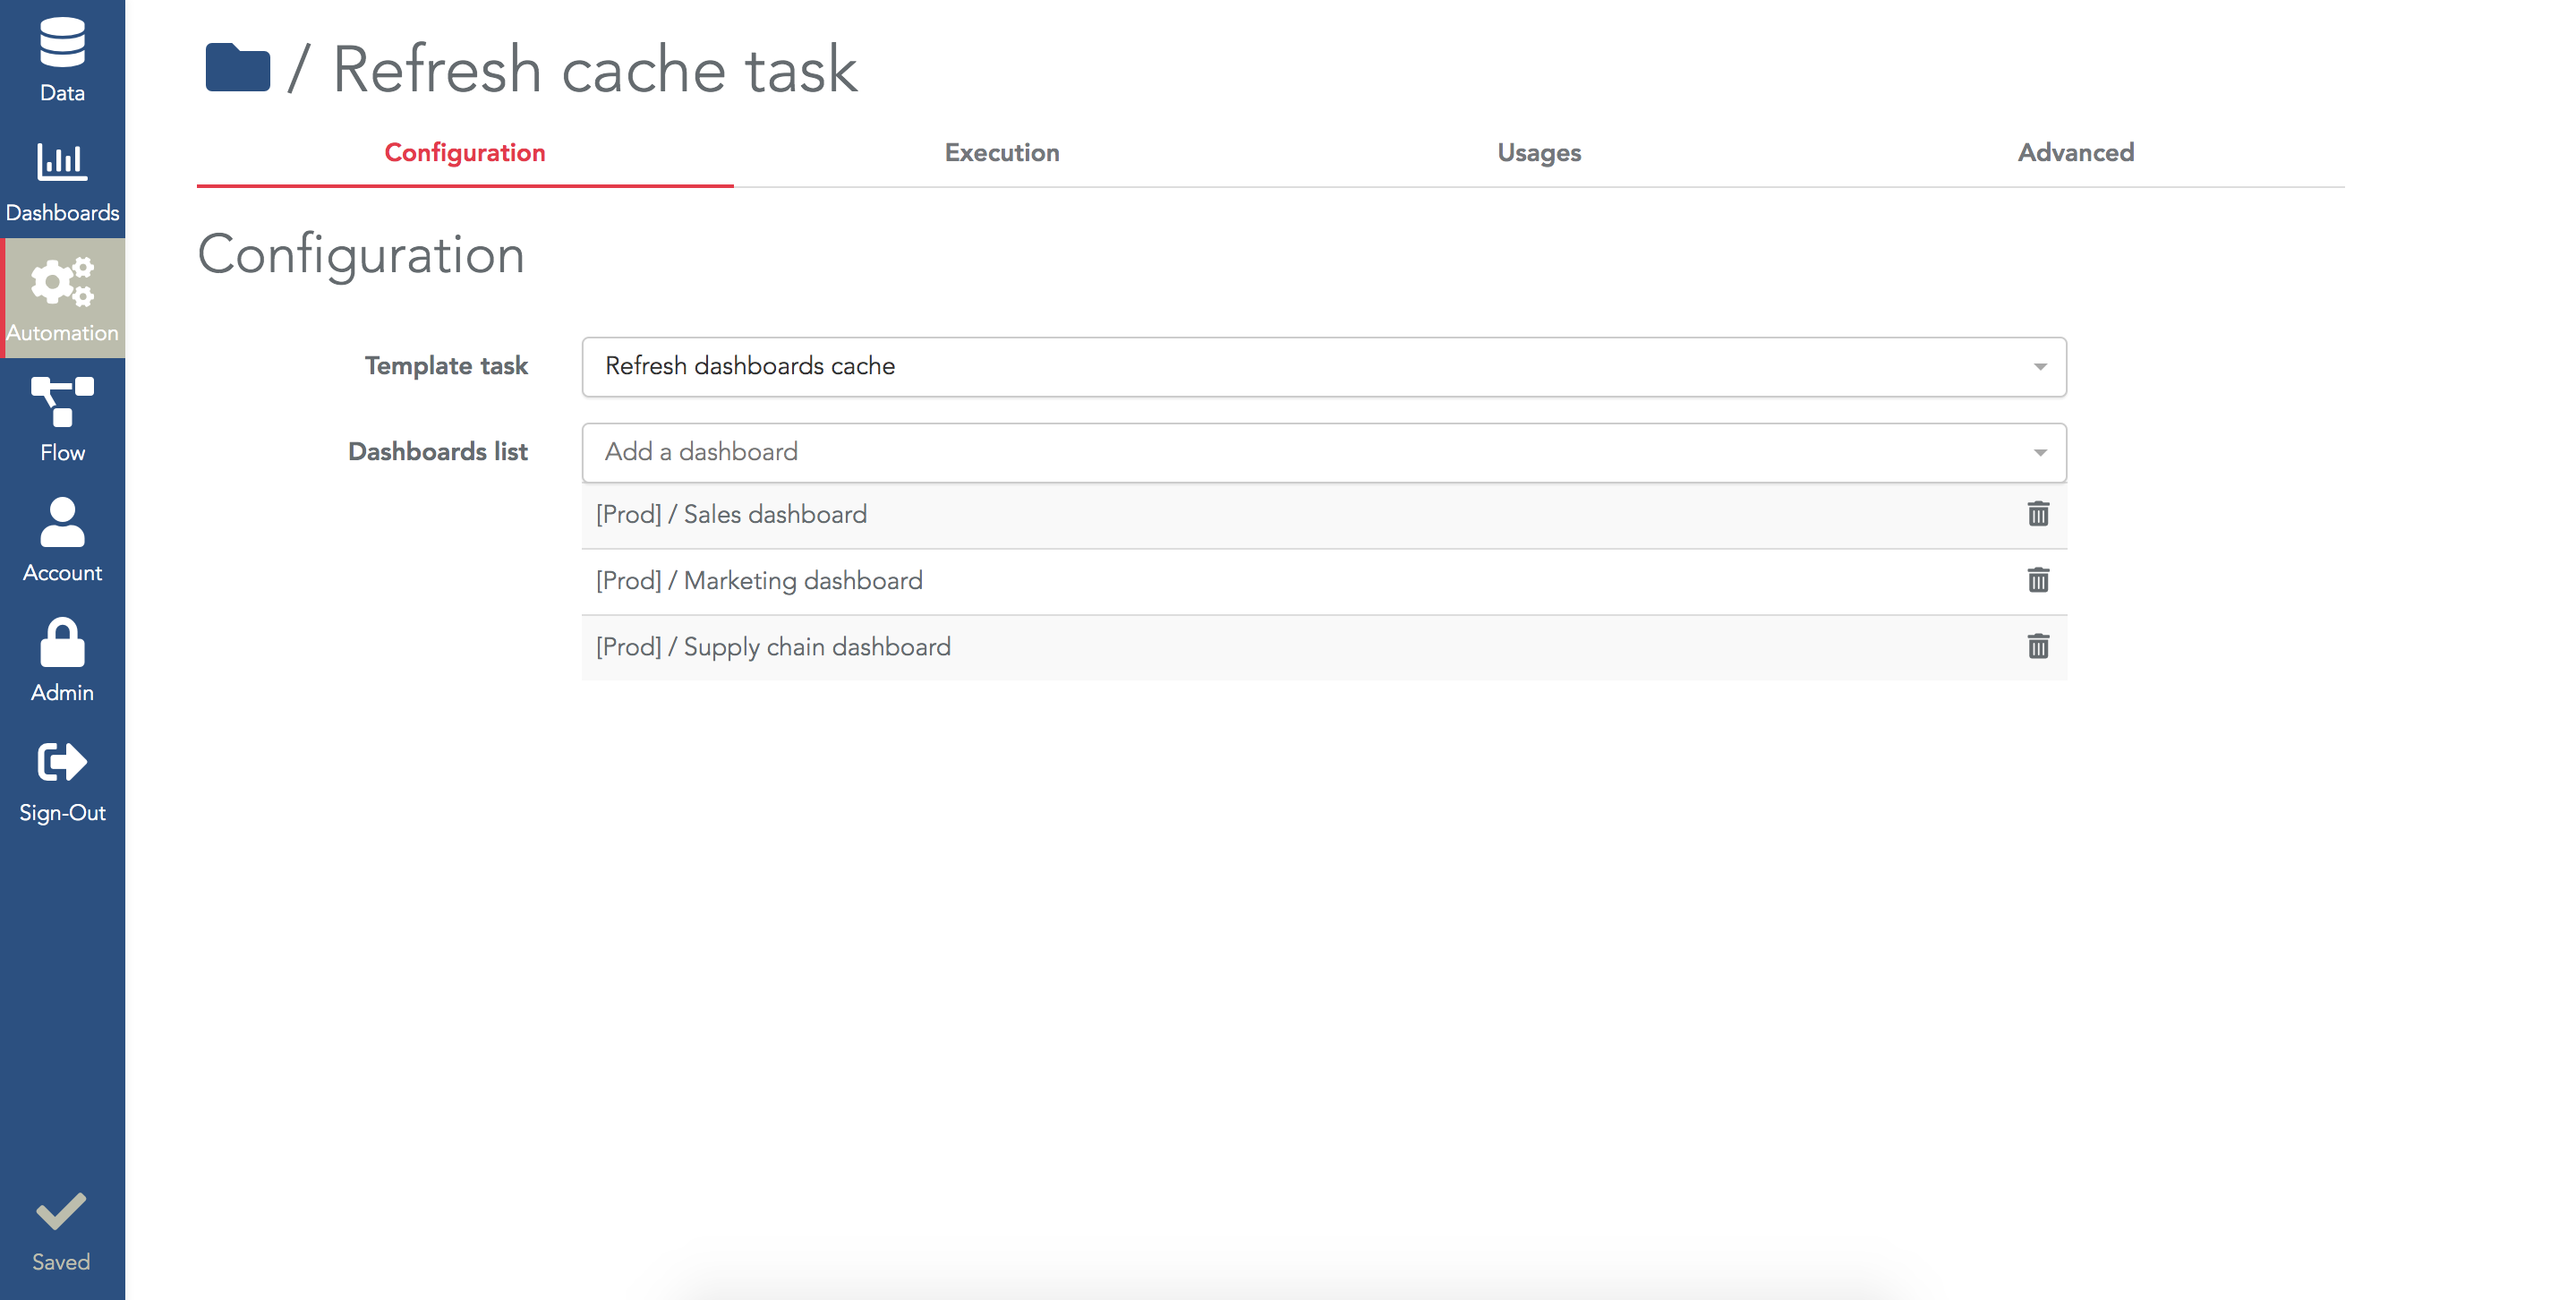 Configure the reload cache task